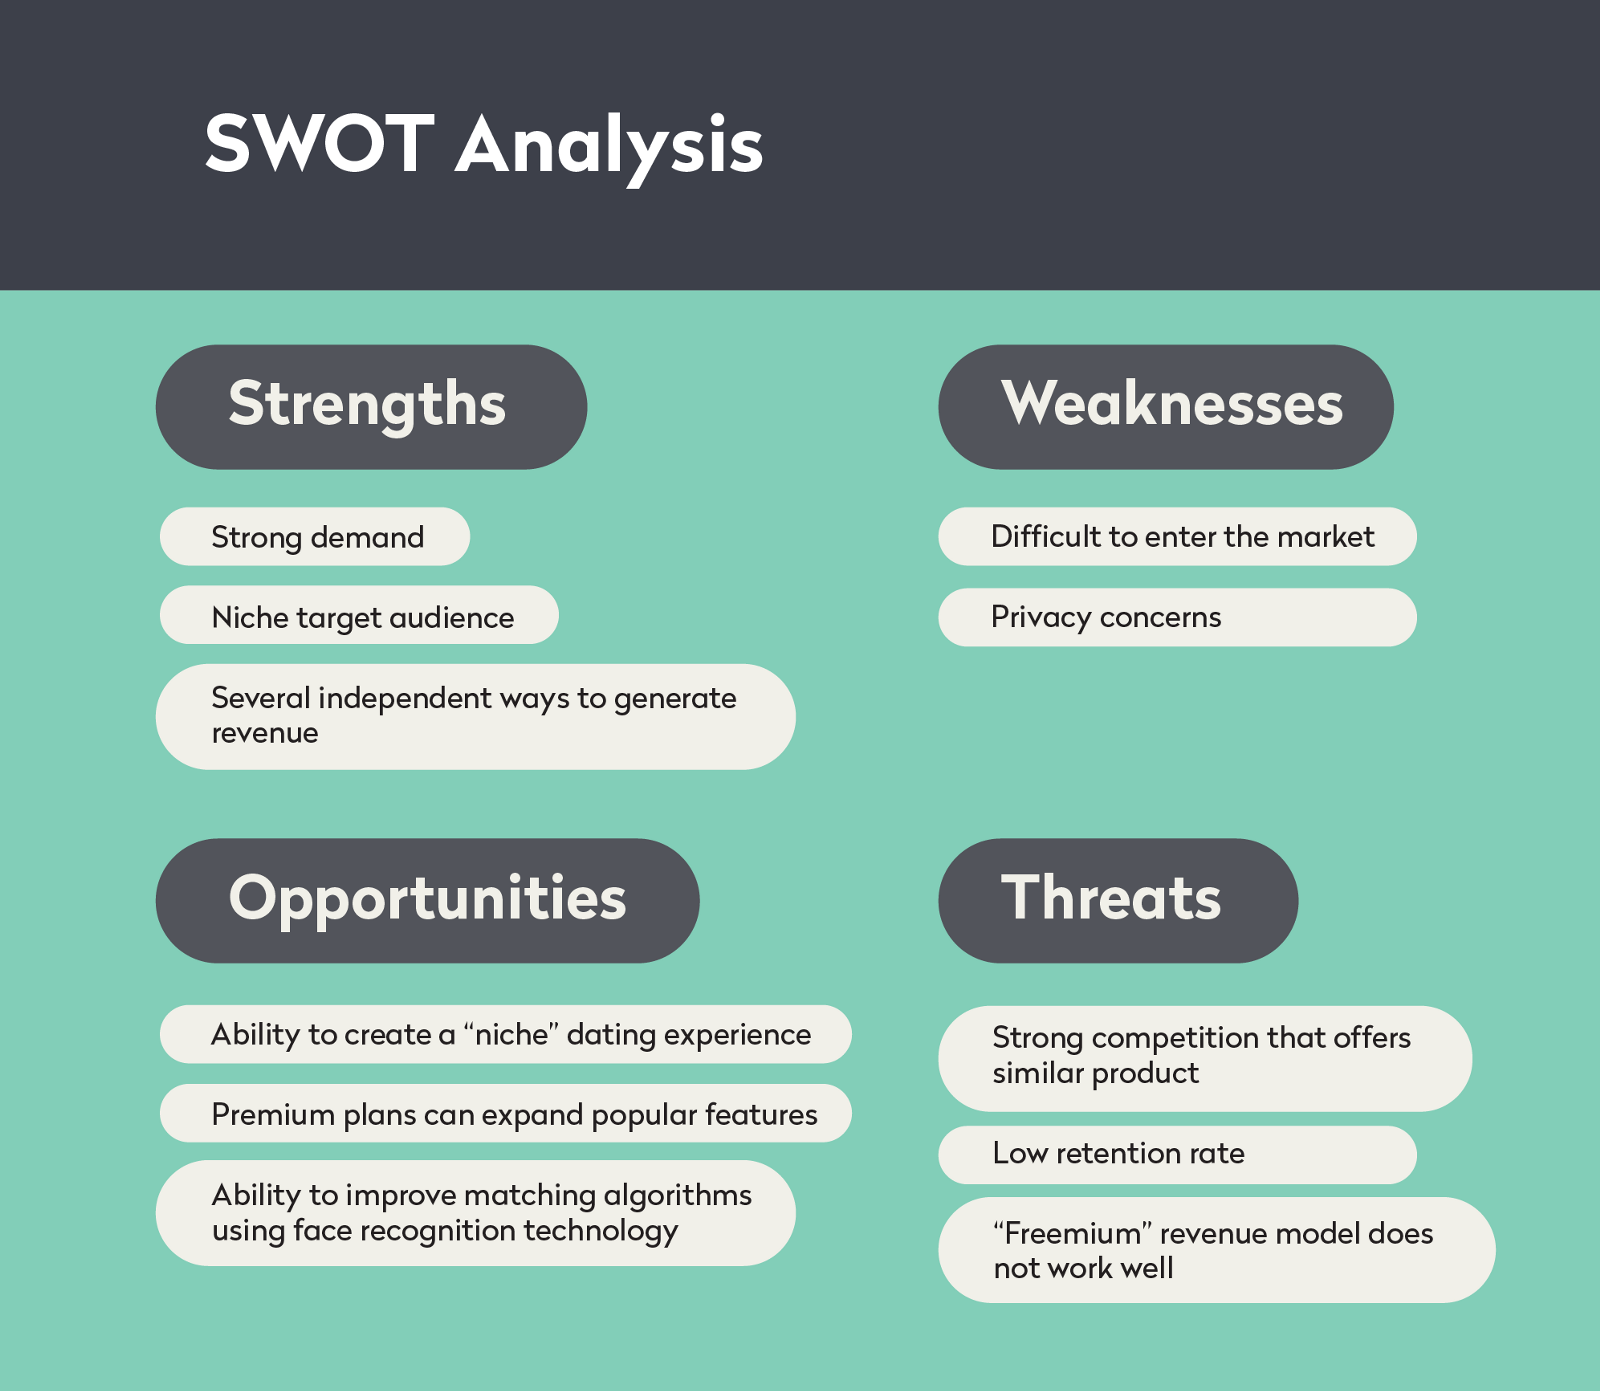 swot analysis apple cider In need of cider production industry data apple cider, cider vinegar and includes the necessary information to perform swot, pest and steer analysis.